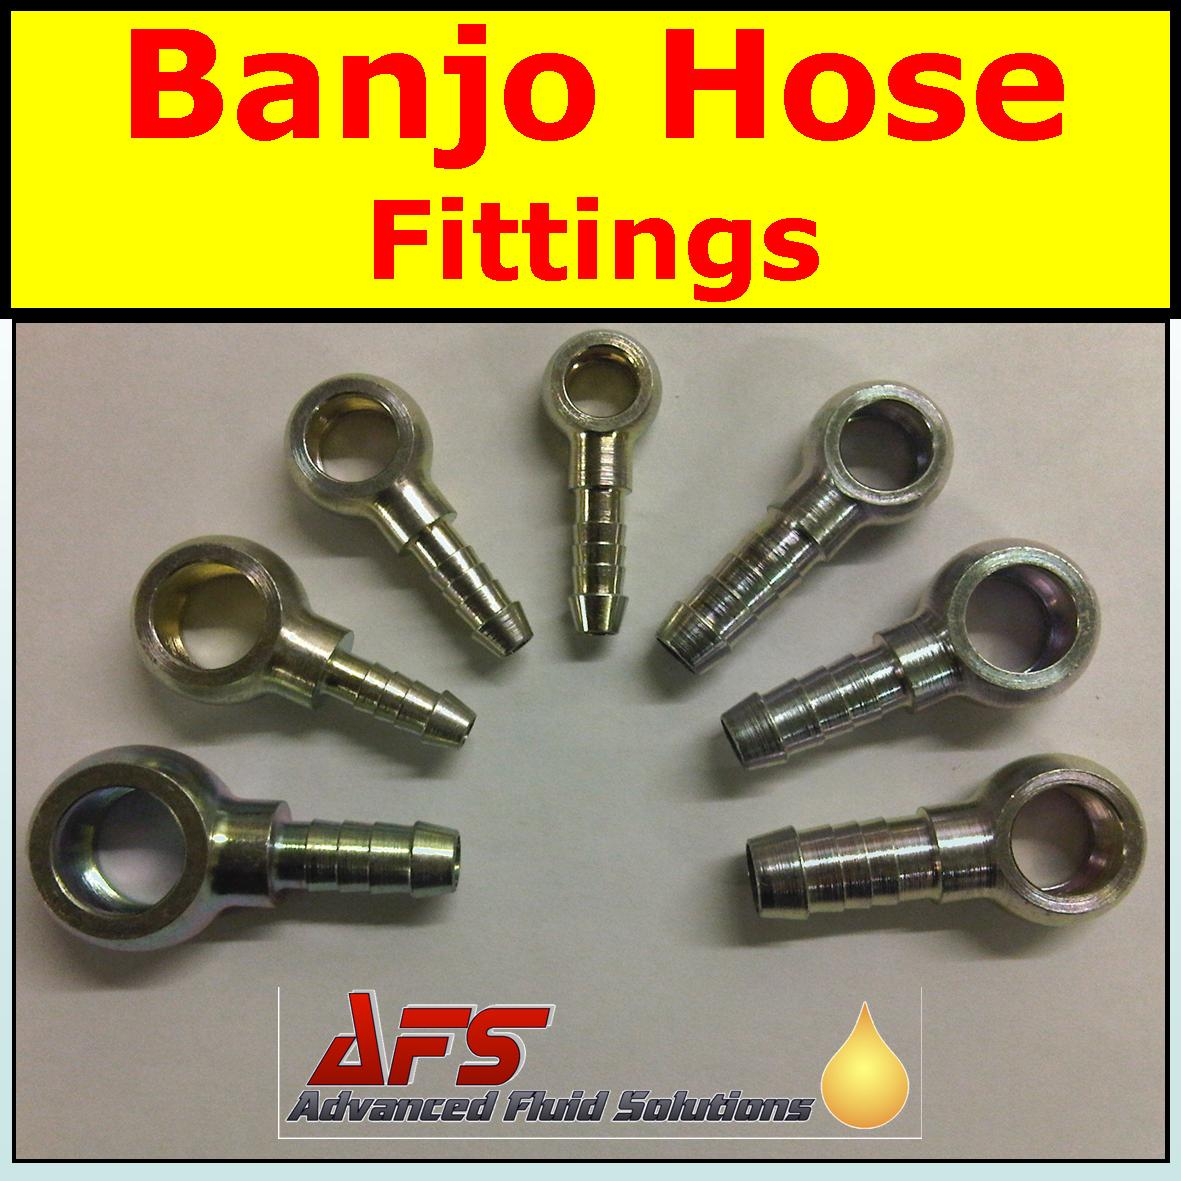 Banjo hose fittings